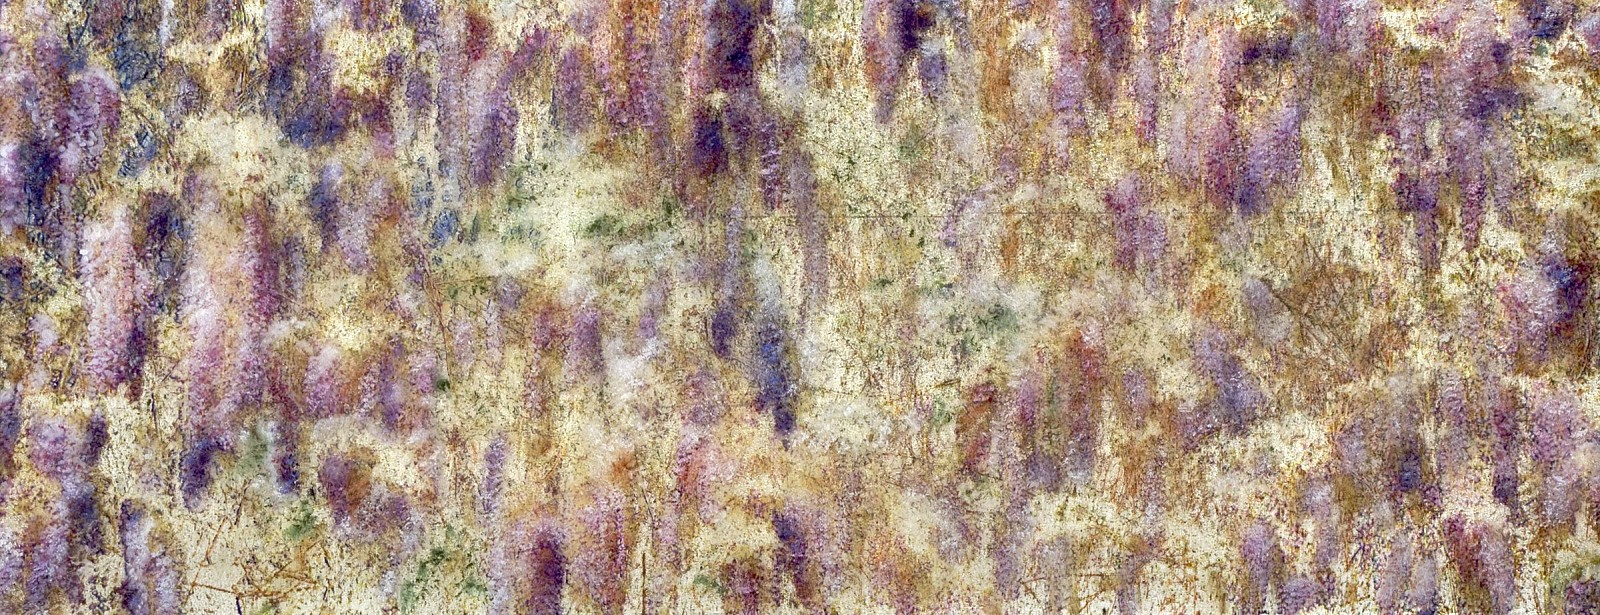 Susan Goldsmith, Lavender lace 2017, White Gold Leaf with Pigment Print, Acrylic Paint, Watercolors and Resin on Panel